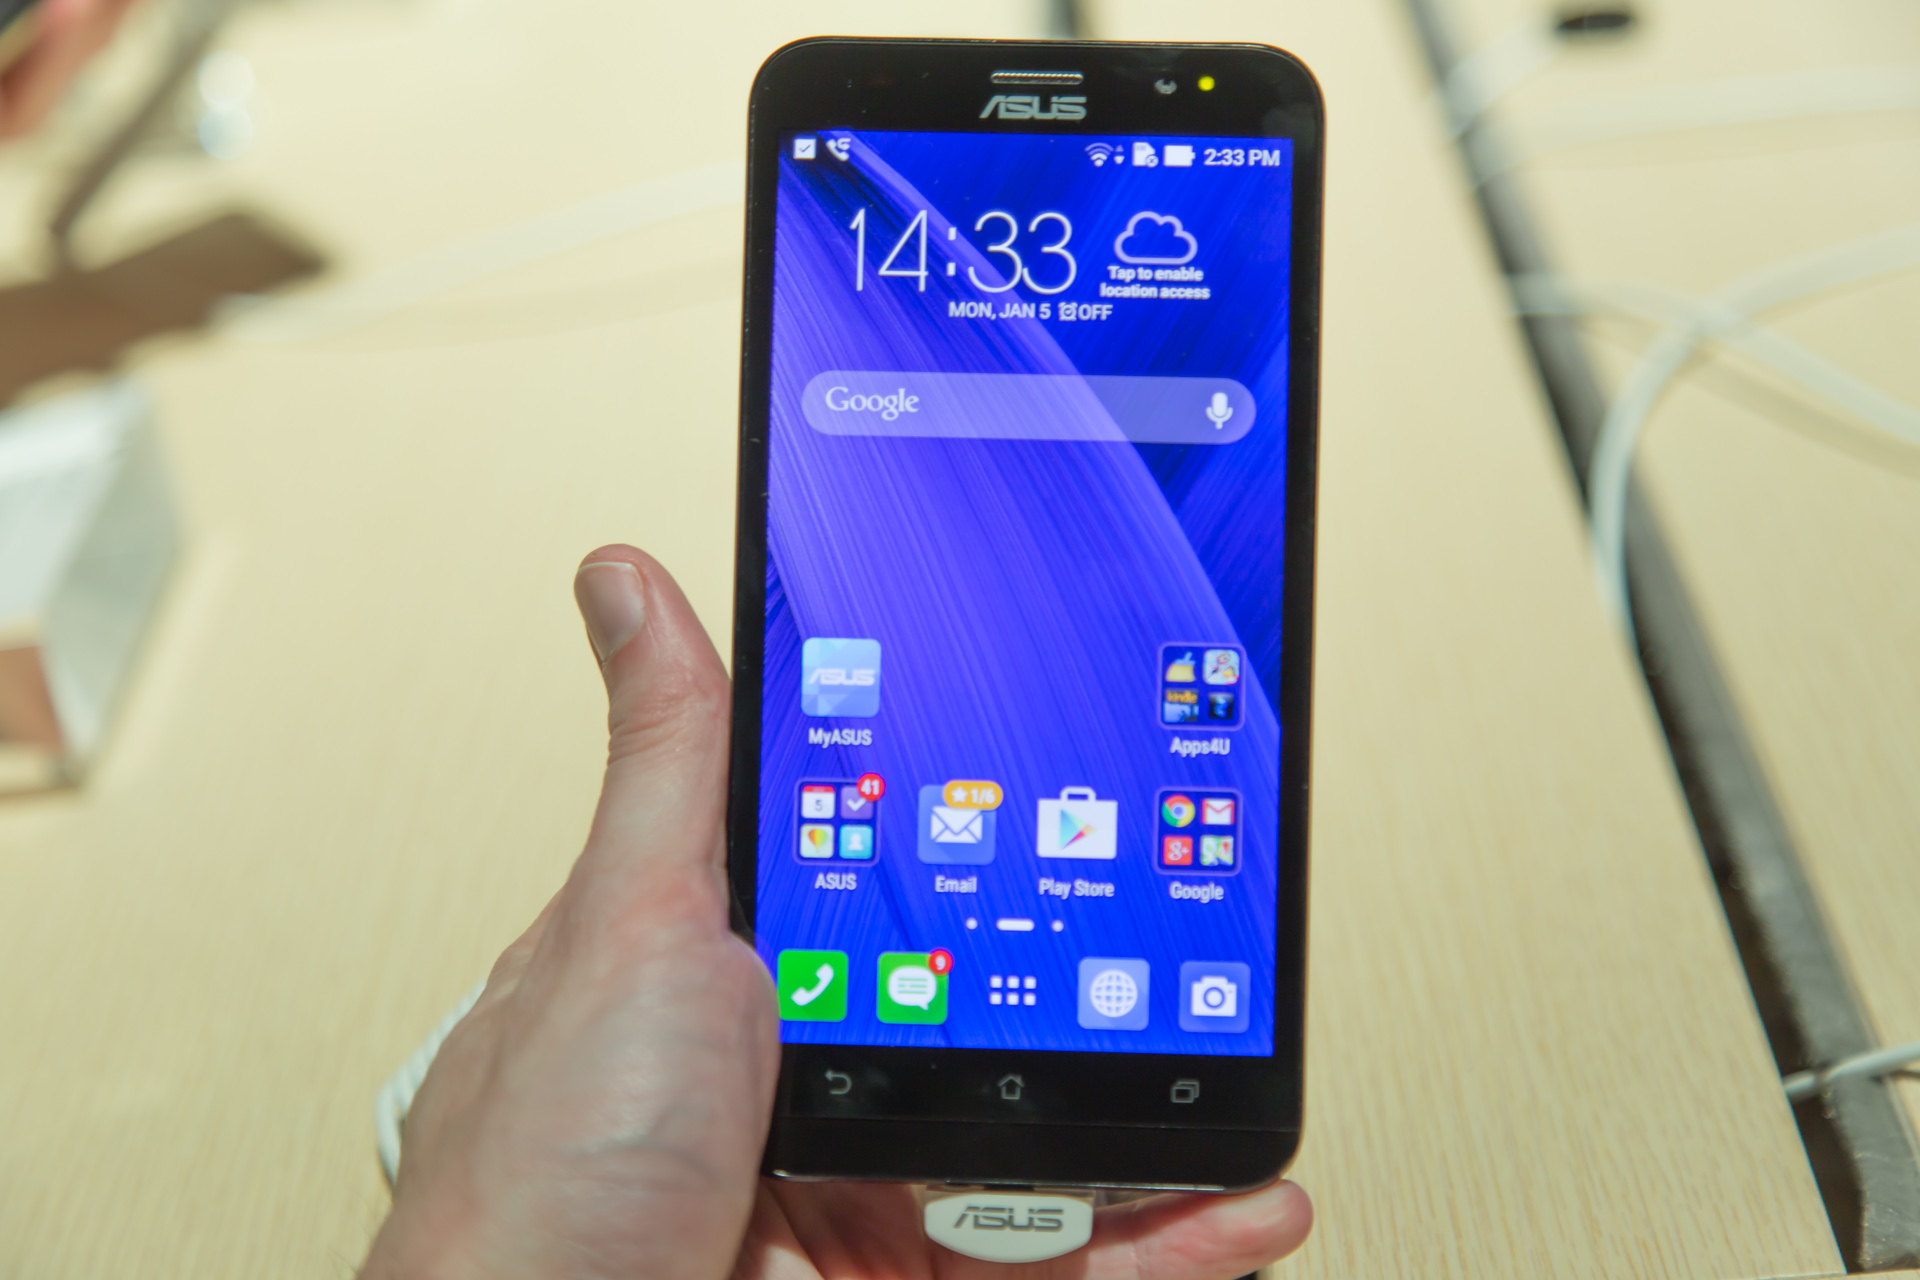 Asus zenfone 2 - Budget Flagship devices